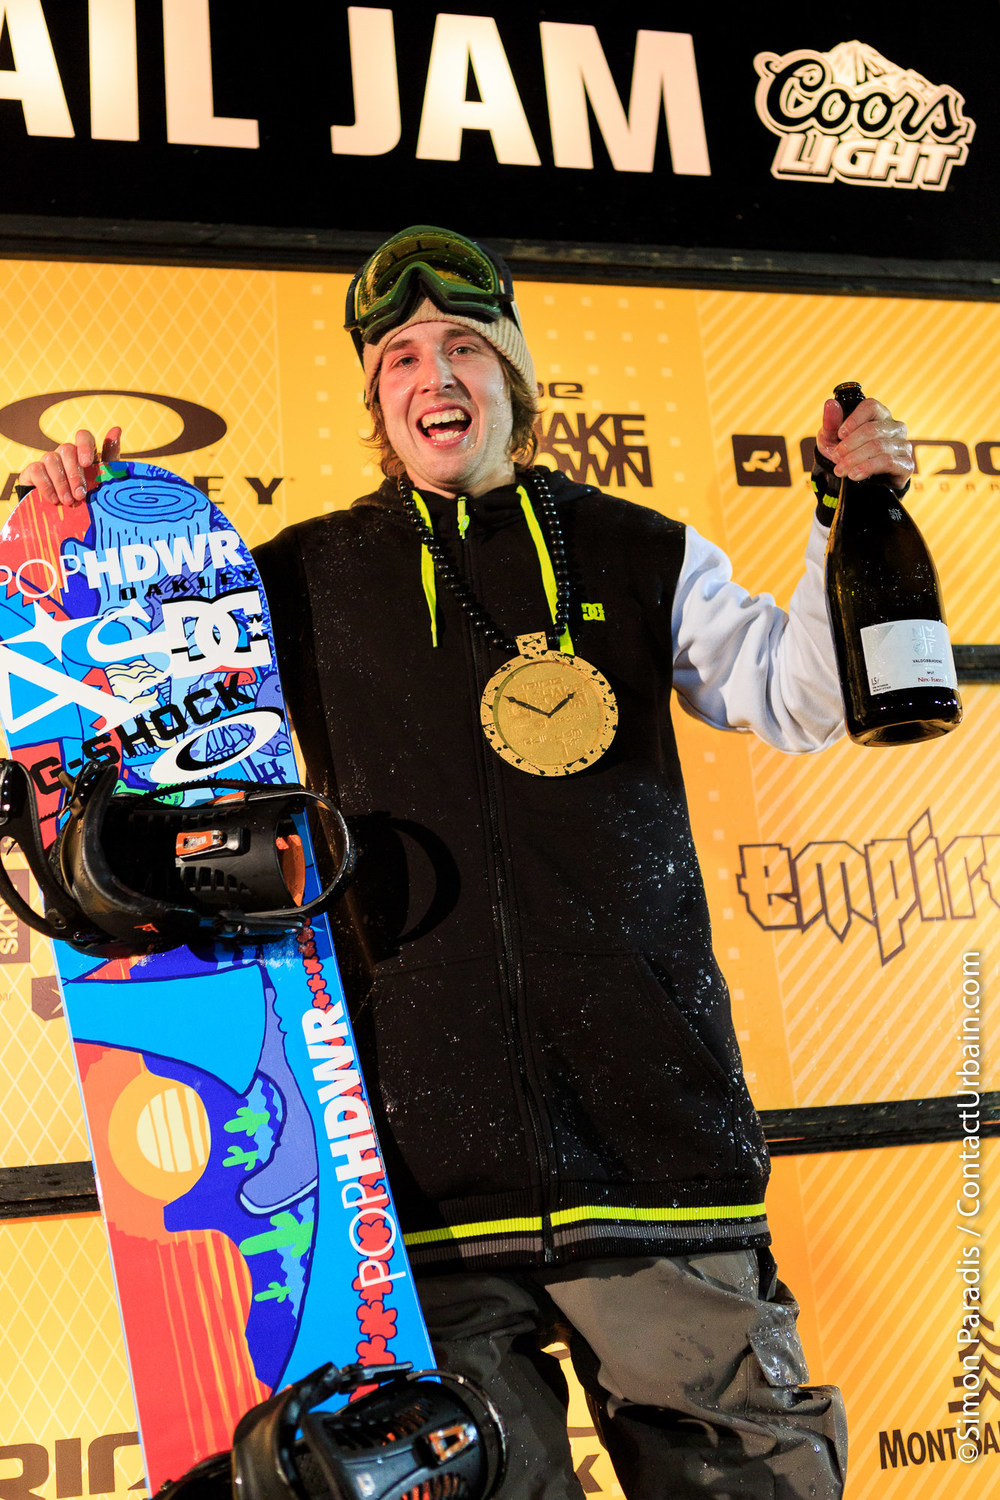 Jeremy Cloutier, winner of Ride Shakedown 2013 - Saint-Sauveur, Qc